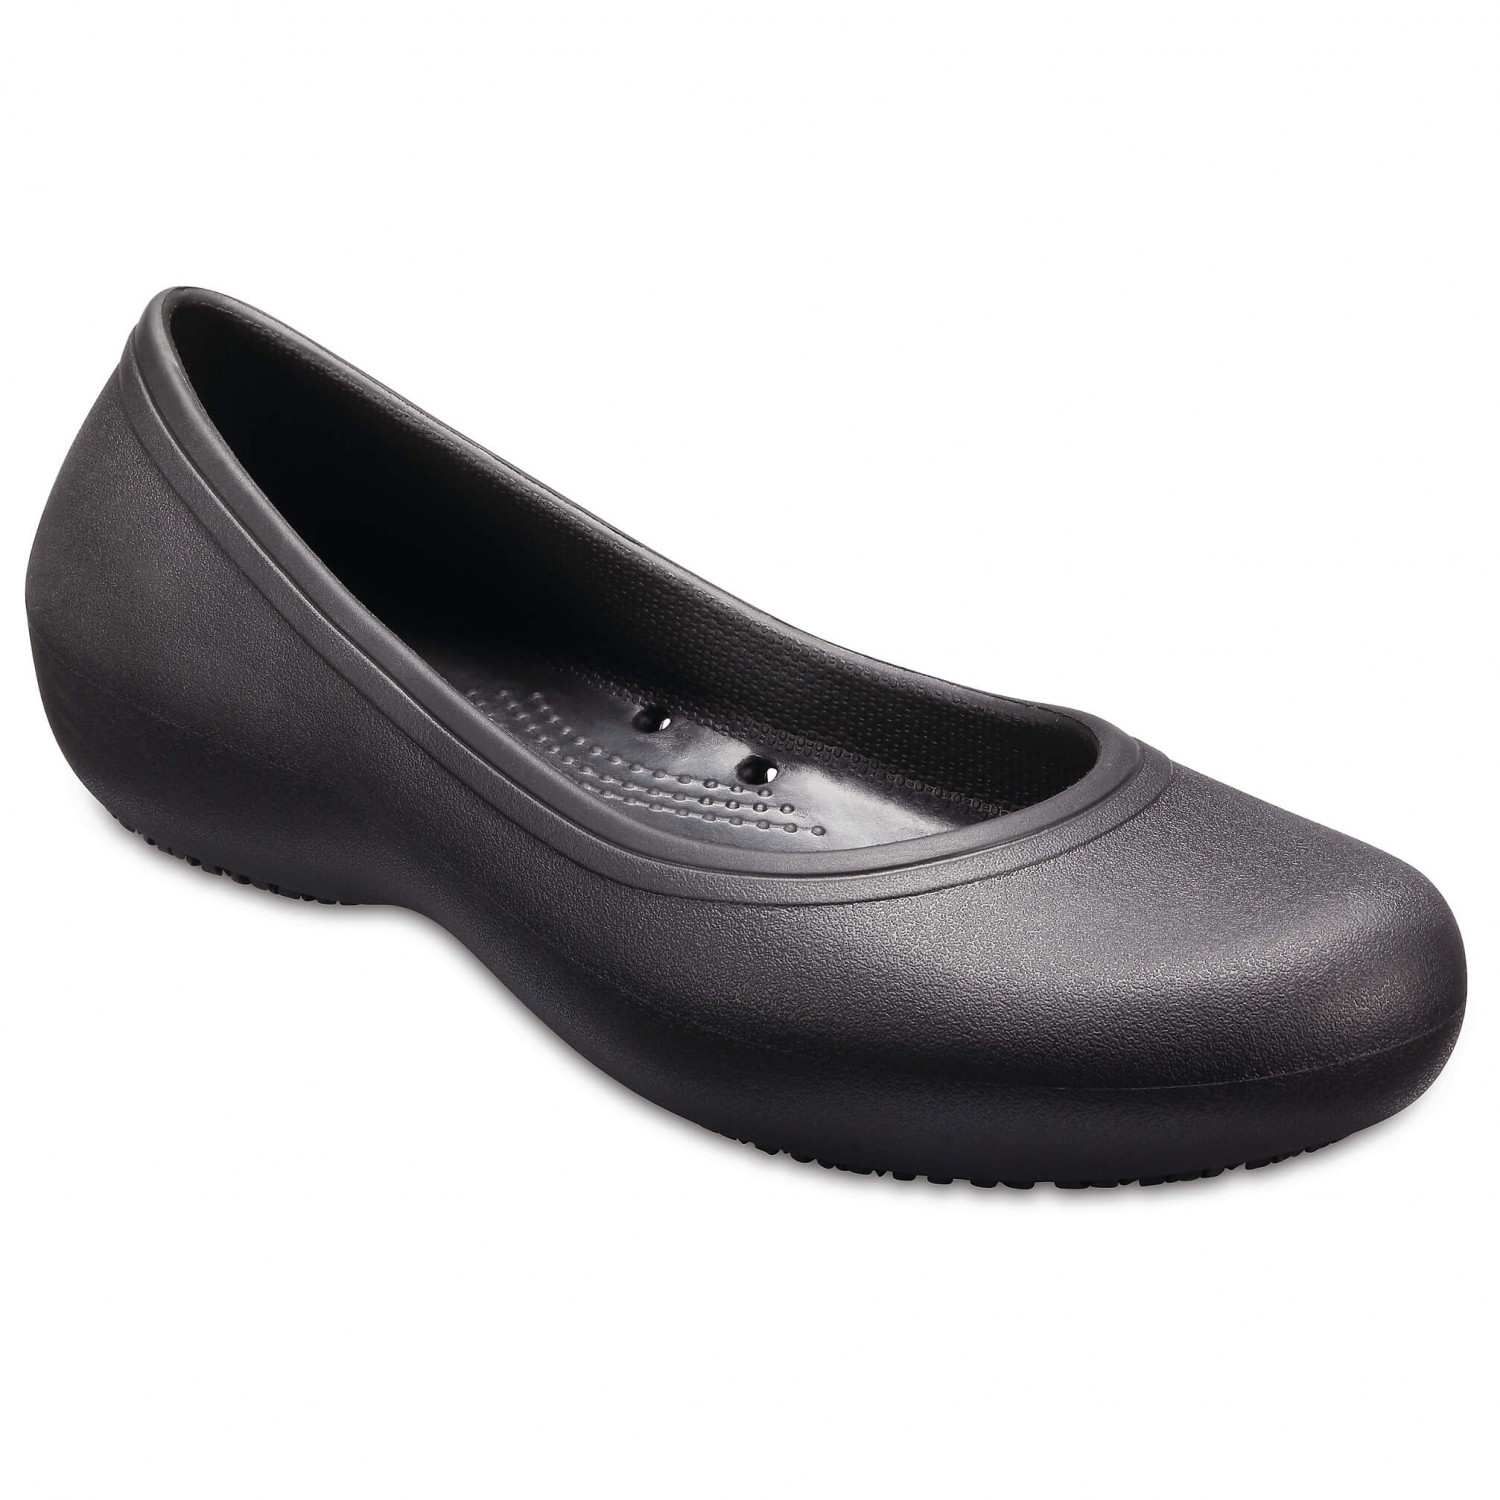 Crocs Women's Crocs at Work Flat Sneaker Black | W10 (US)